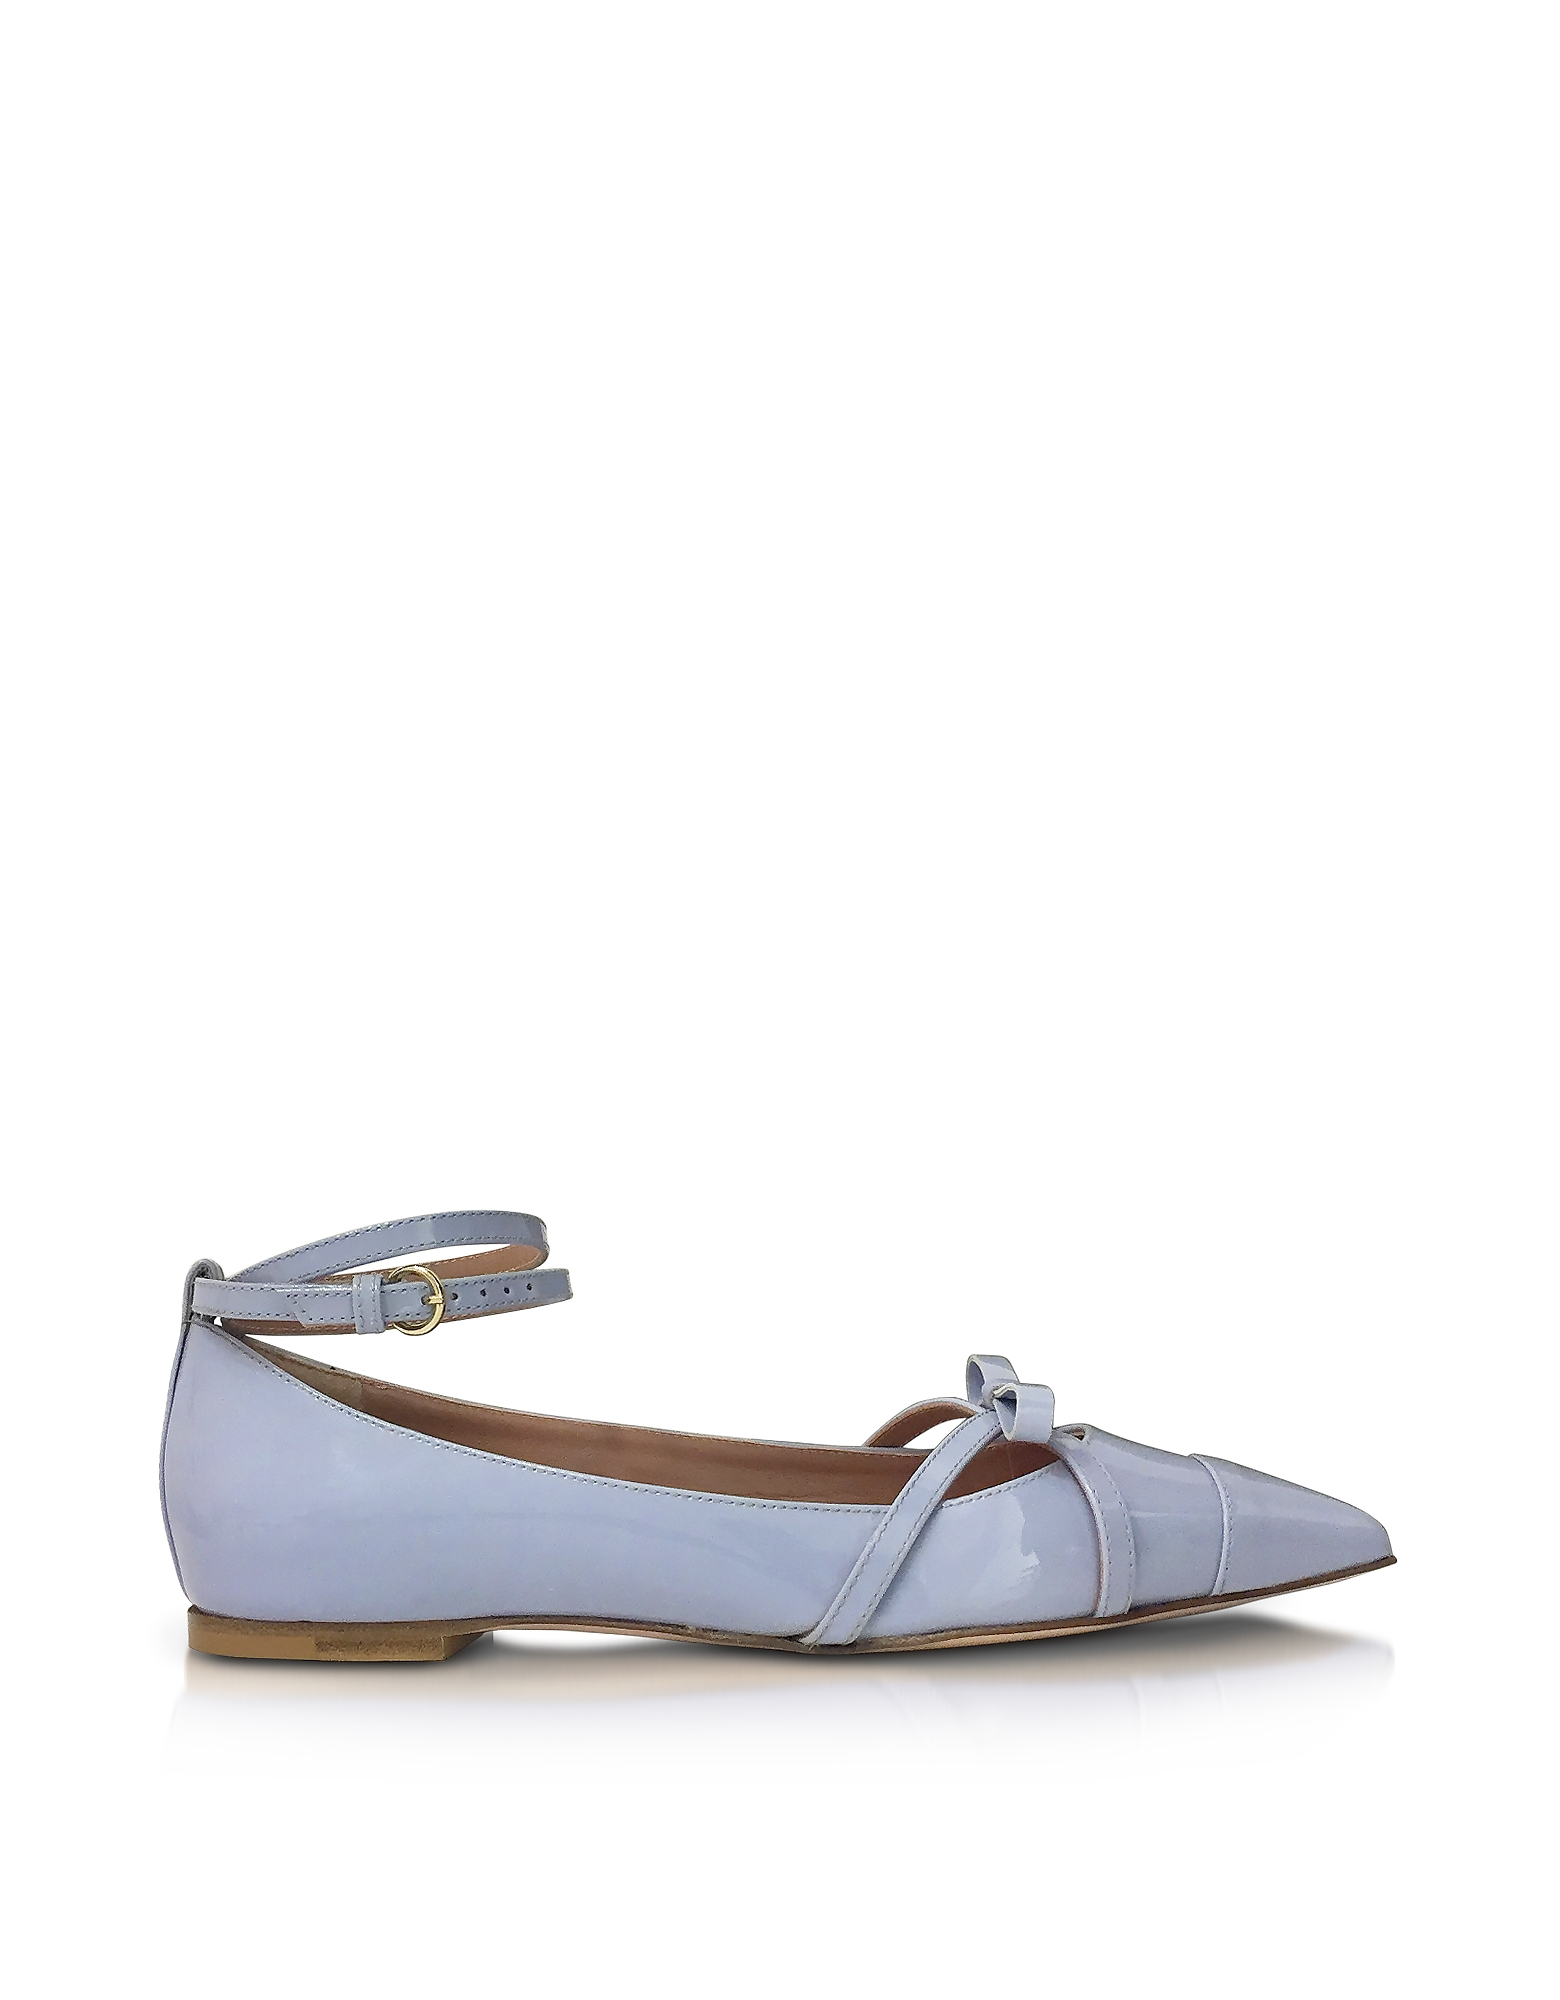 RED Valentino Shoes, Ortensia Blue Patent Leather Ballerinas